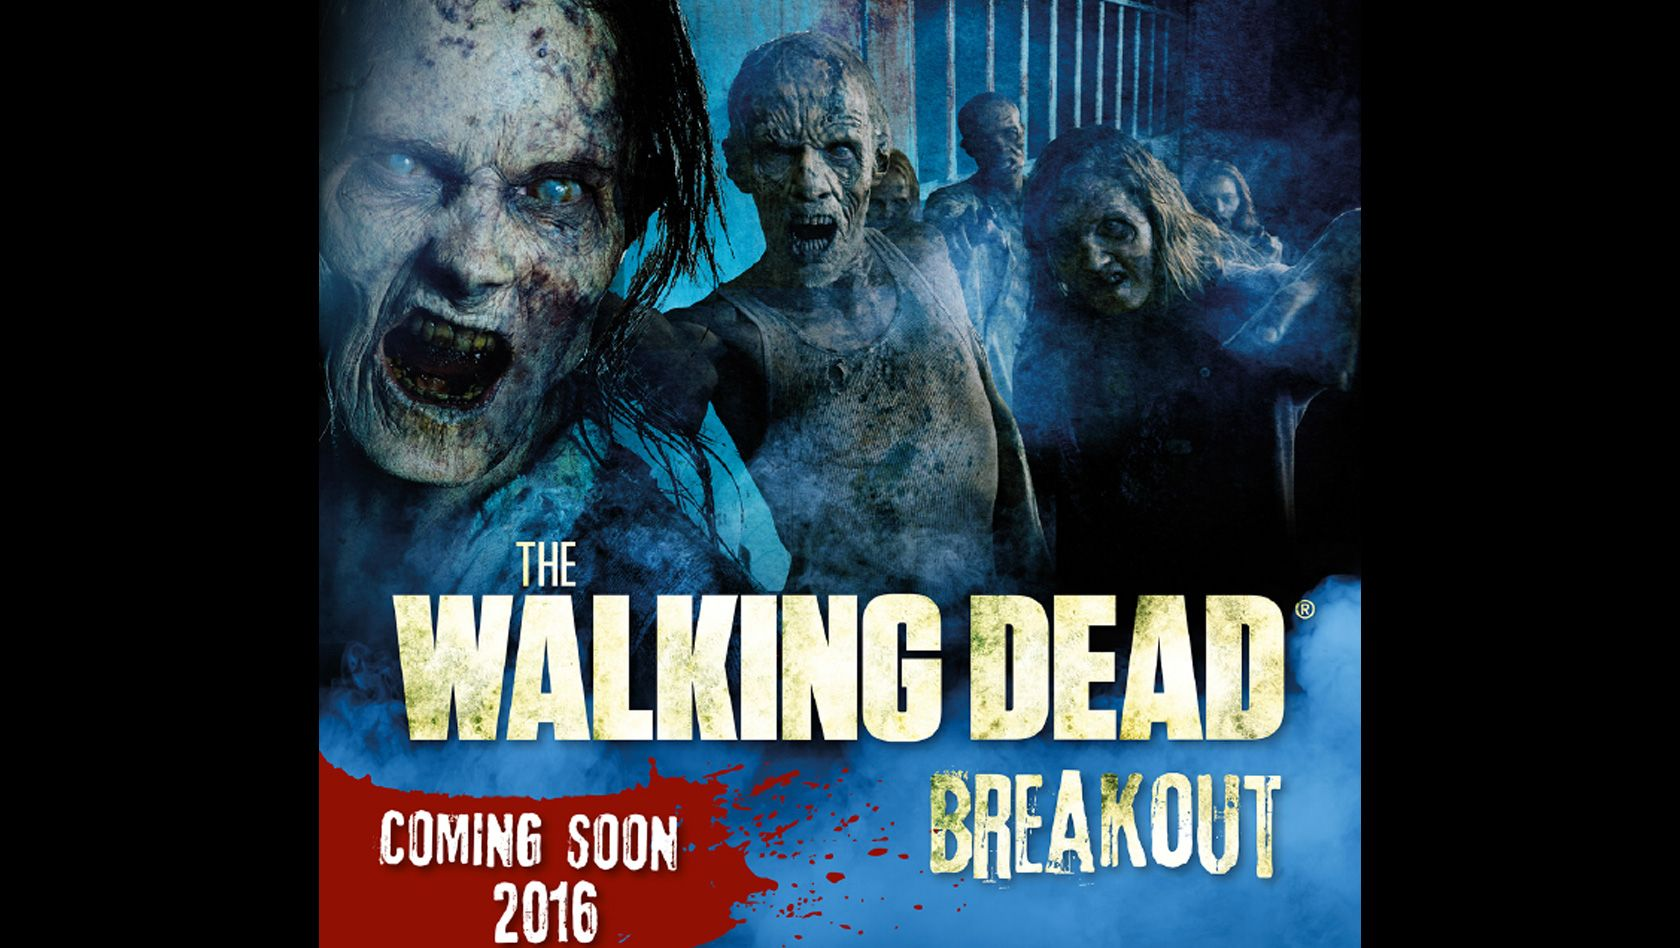 """The Walking Dead Breakout"" im Movie Park Germany wird dauerhafte Horror-Attraktion - mit Live-Erschreckern auf 700 m²: Details: http://www.parkerlebnis.de/the-walking-dead-breaktout-movie-park-germany-2016-ankuendigung_20267.html"